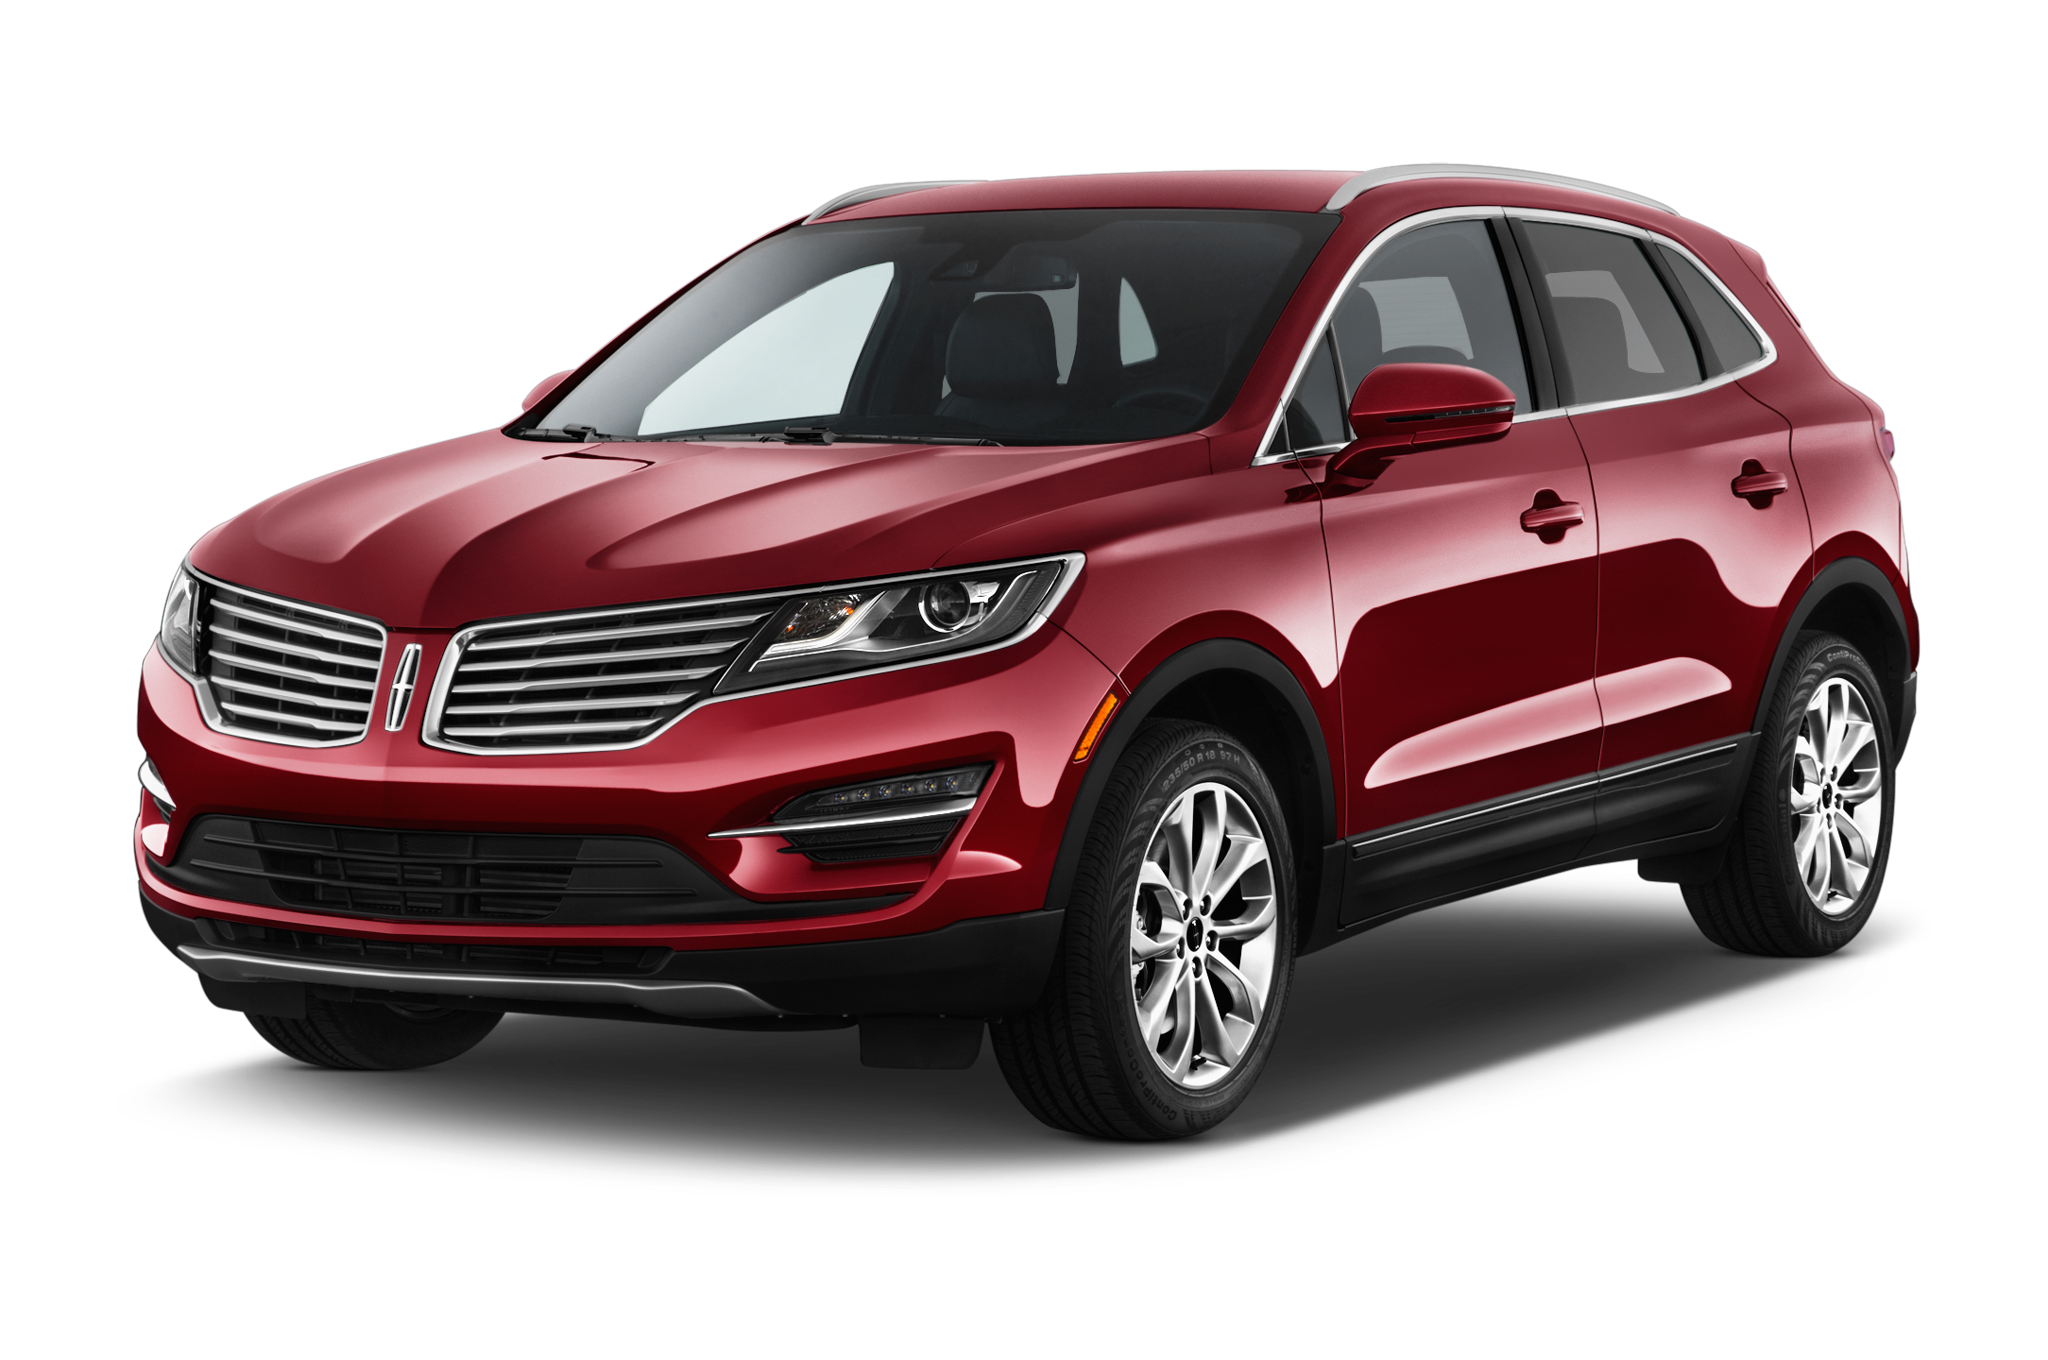 2017 lincoln mkc black label awd specs and features msn autos. Black Bedroom Furniture Sets. Home Design Ideas